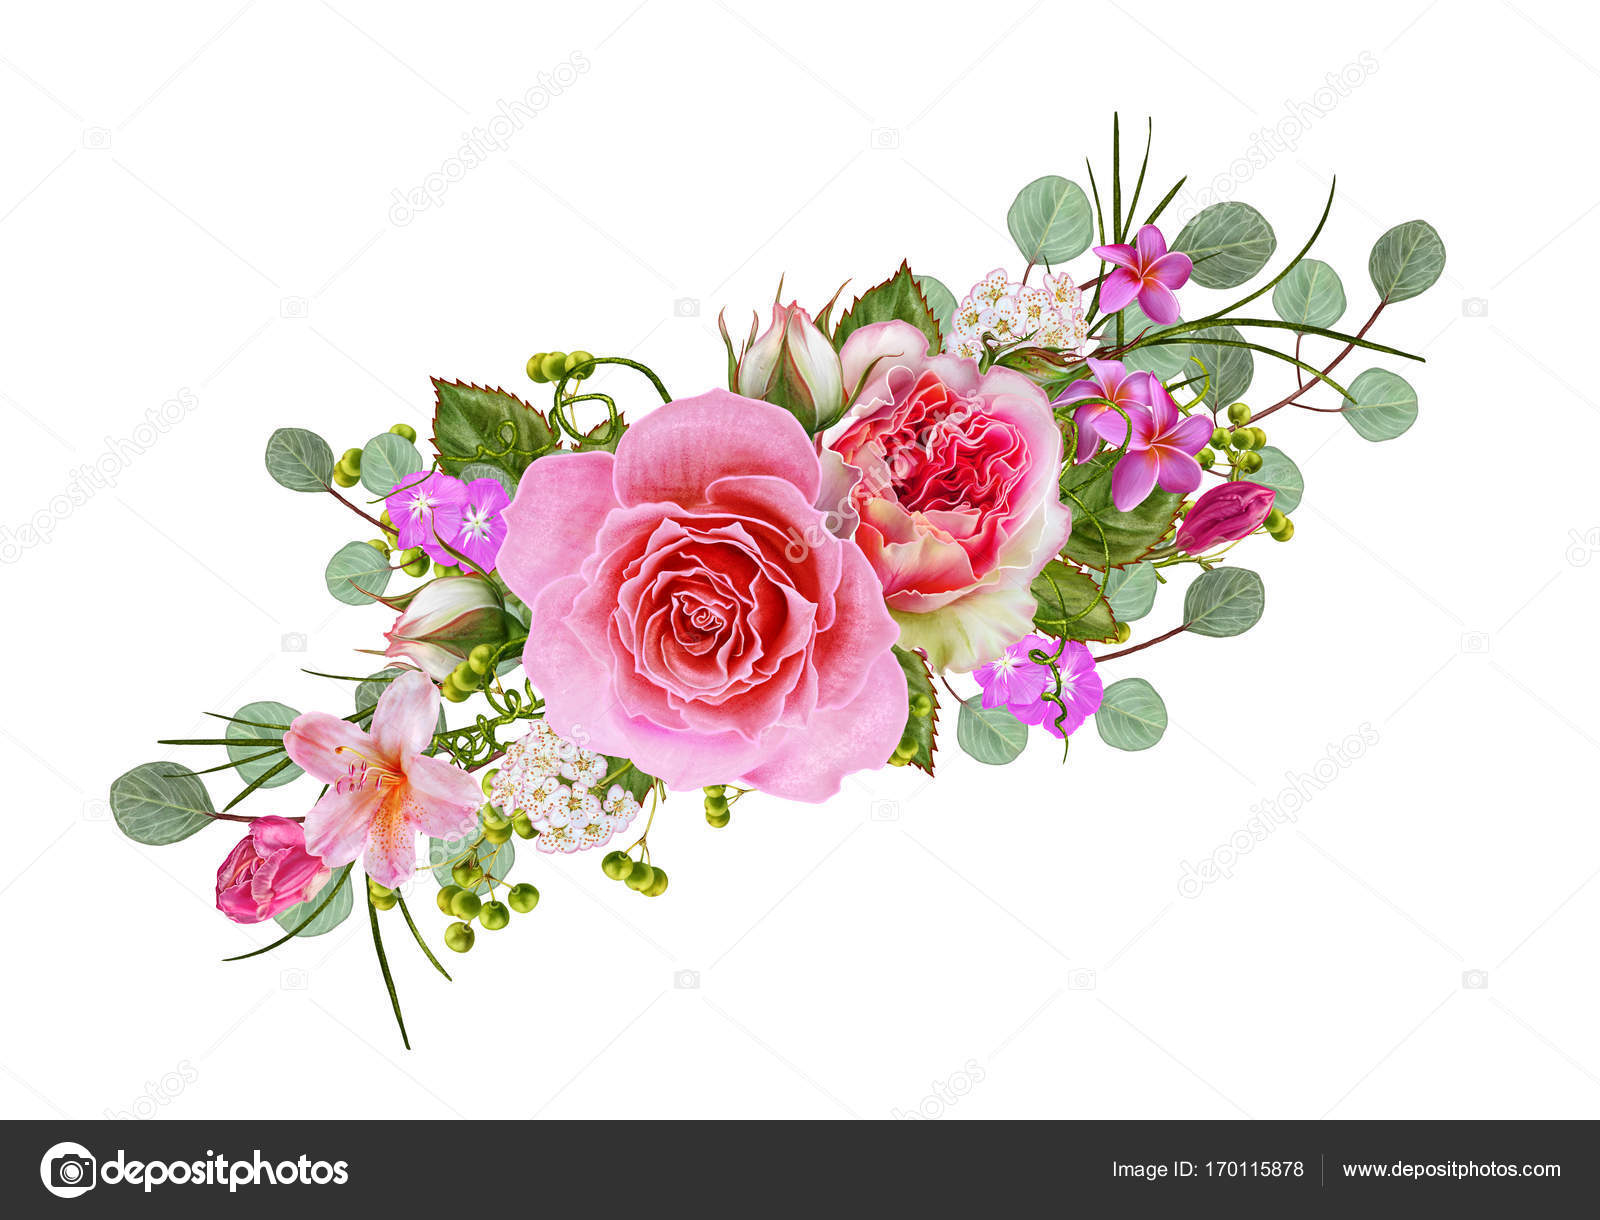 Flower Composition Wreath Garland Of Delicate Beautiful Pink Roses And Green Leaves Isolated On White Background Stock Photo Image By C Sokolova 170115878